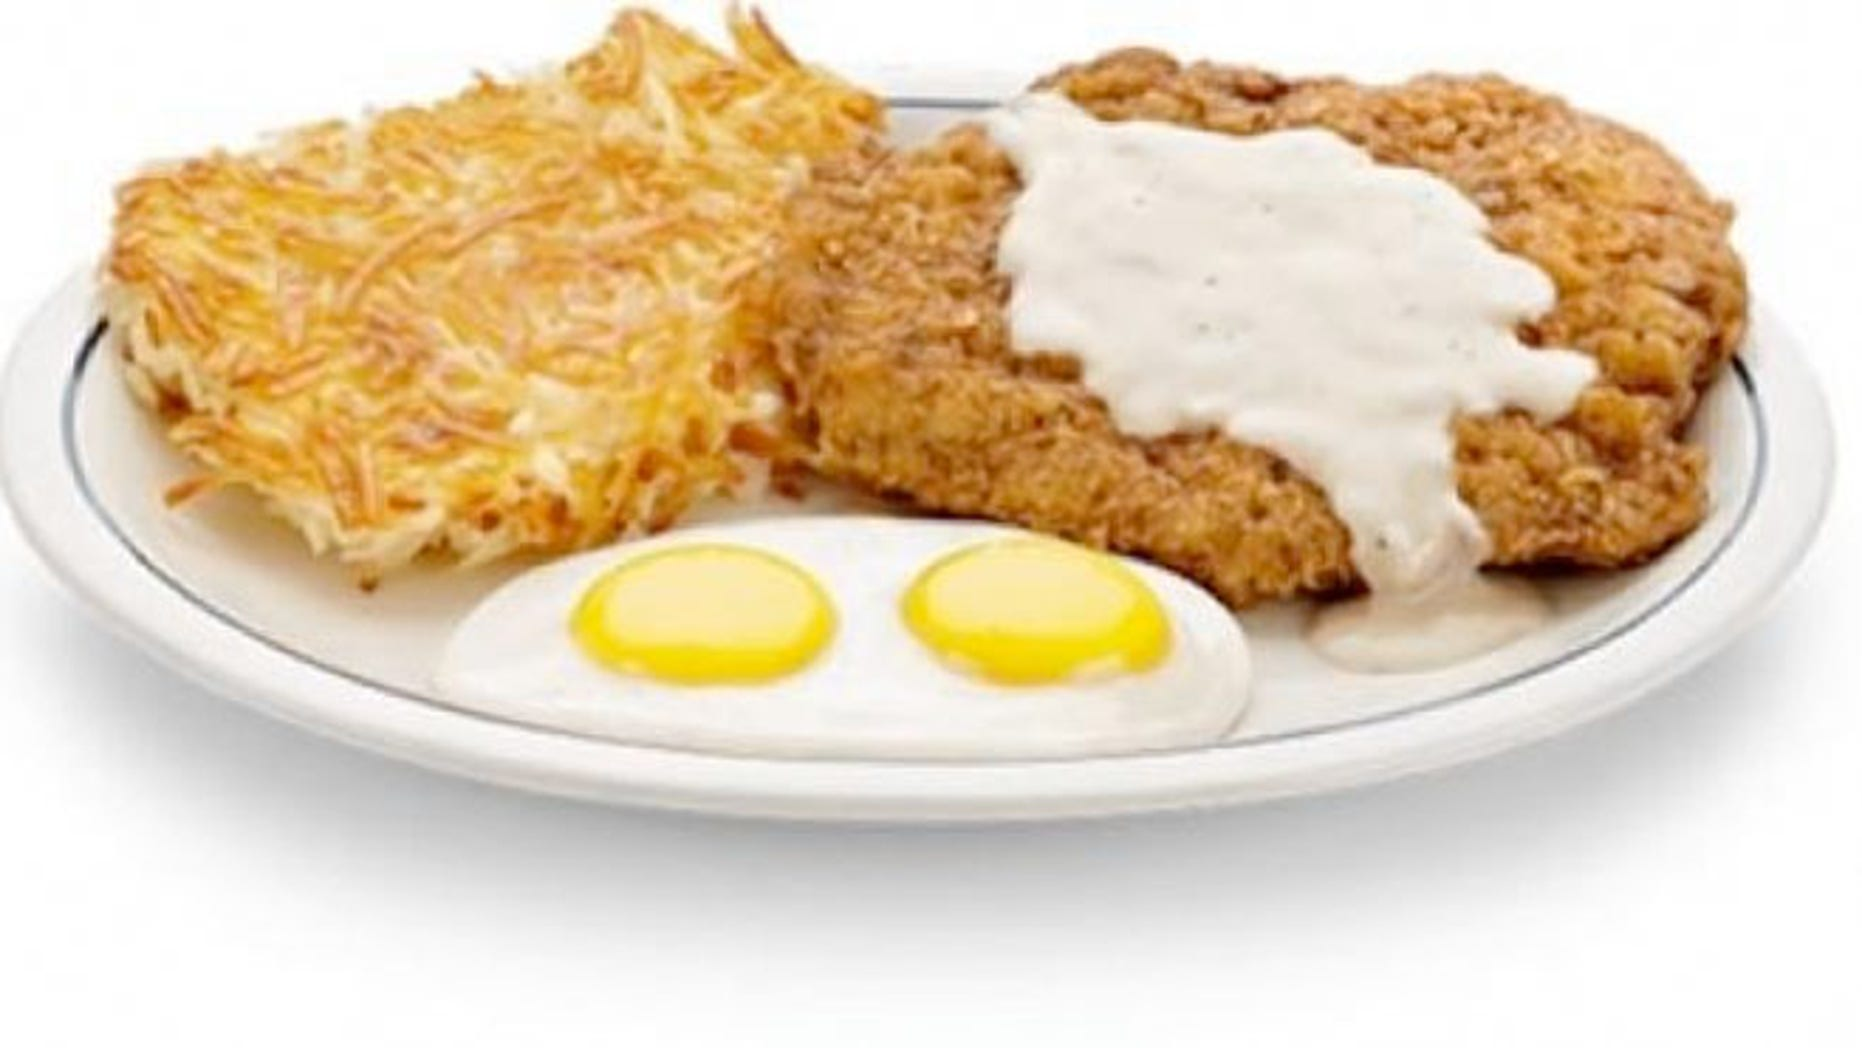 IHOP's Country Fried Steak and Eggs breakfast has as many calories and saturated fat grams as five McDonald's Egg McMuffins, says the Center for Science in the Public Interest.